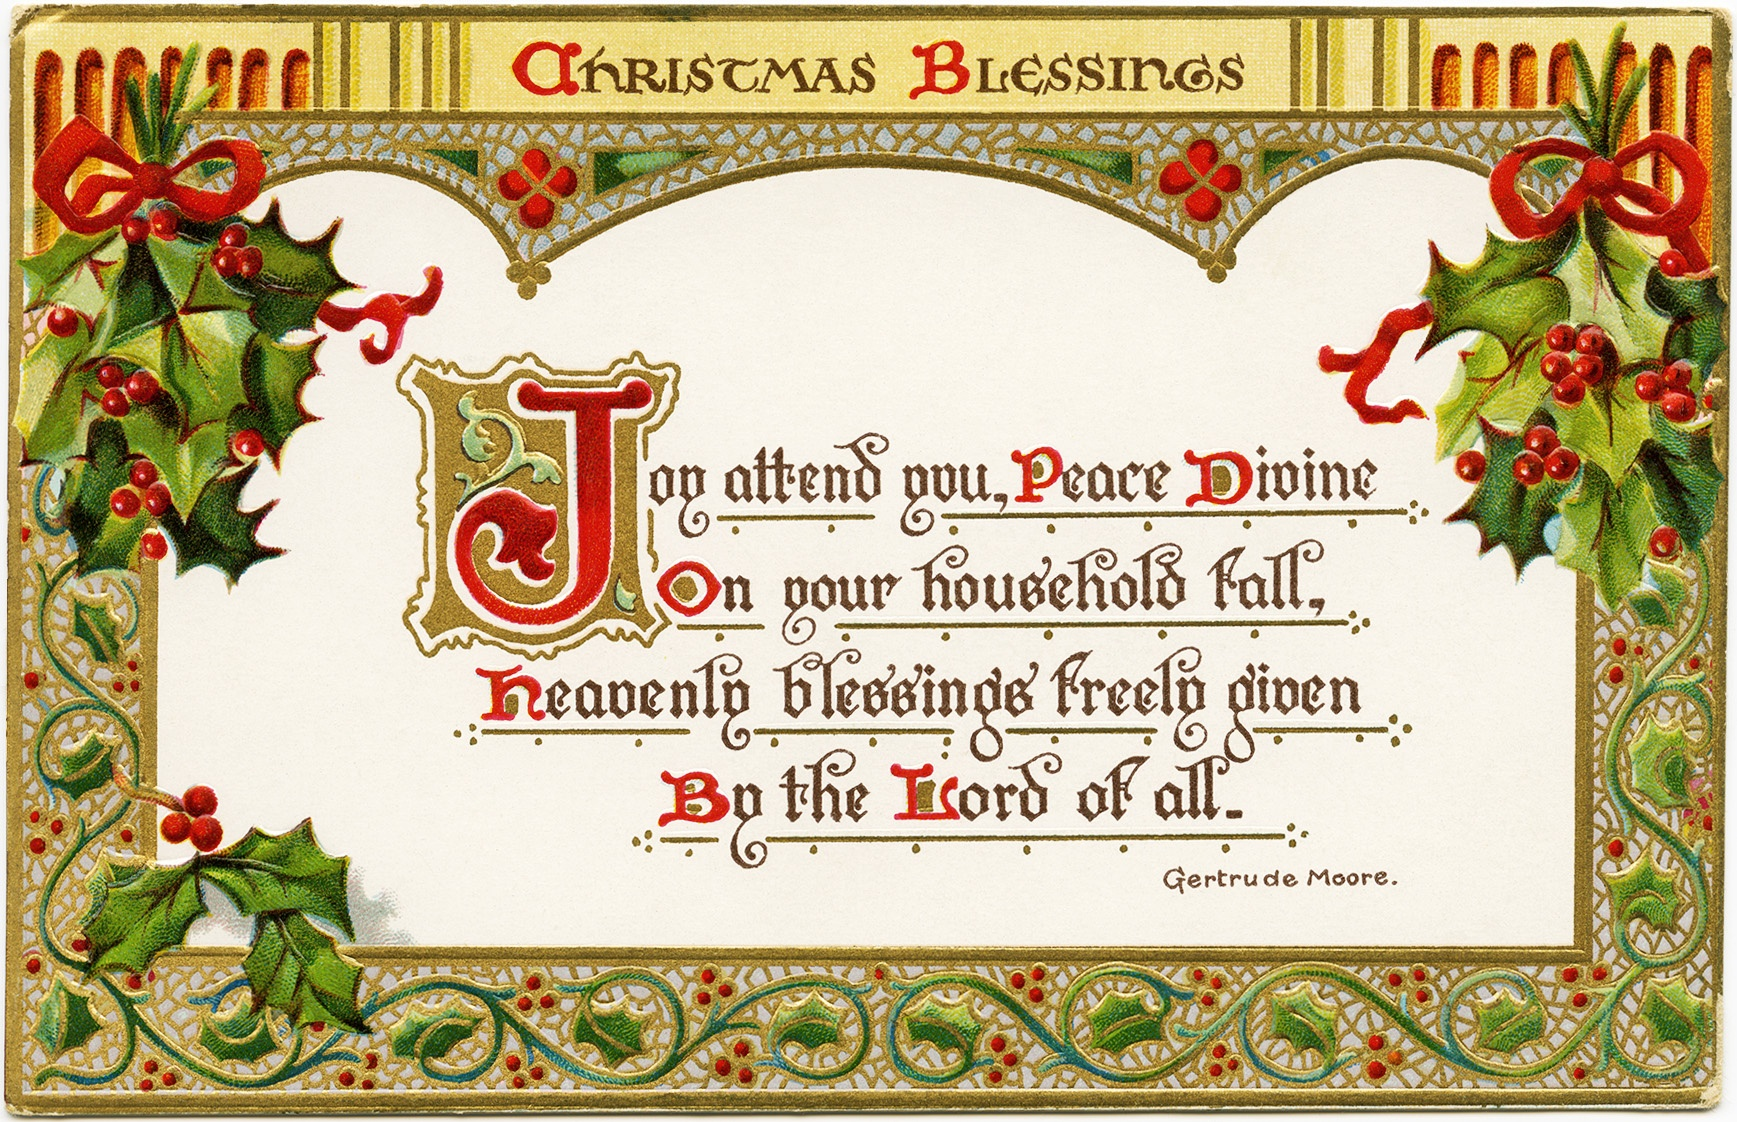 Christmas Blessings ~ Free Vintage Postcard Graphic - Old Design - Free Printable Christian Christmas Greeting Cards